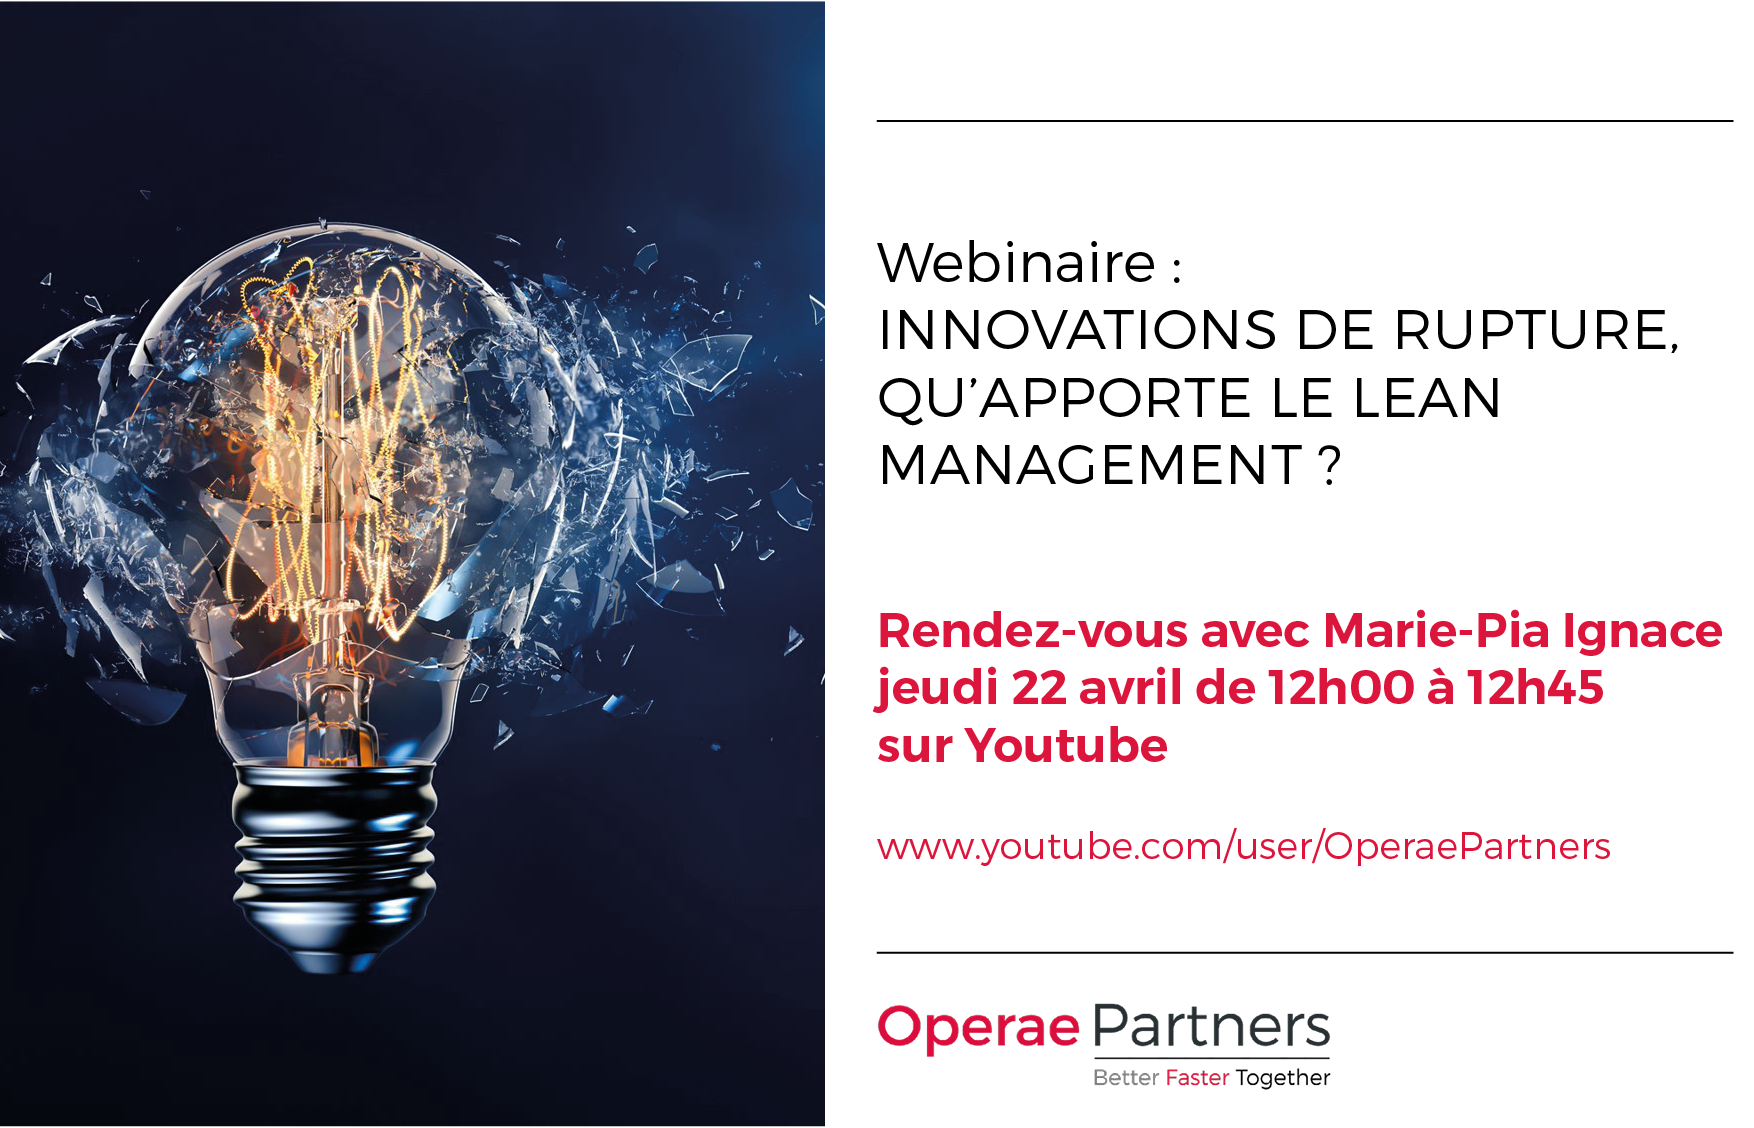 banniere webinaire innovations de rupture-22 avril 2021-1